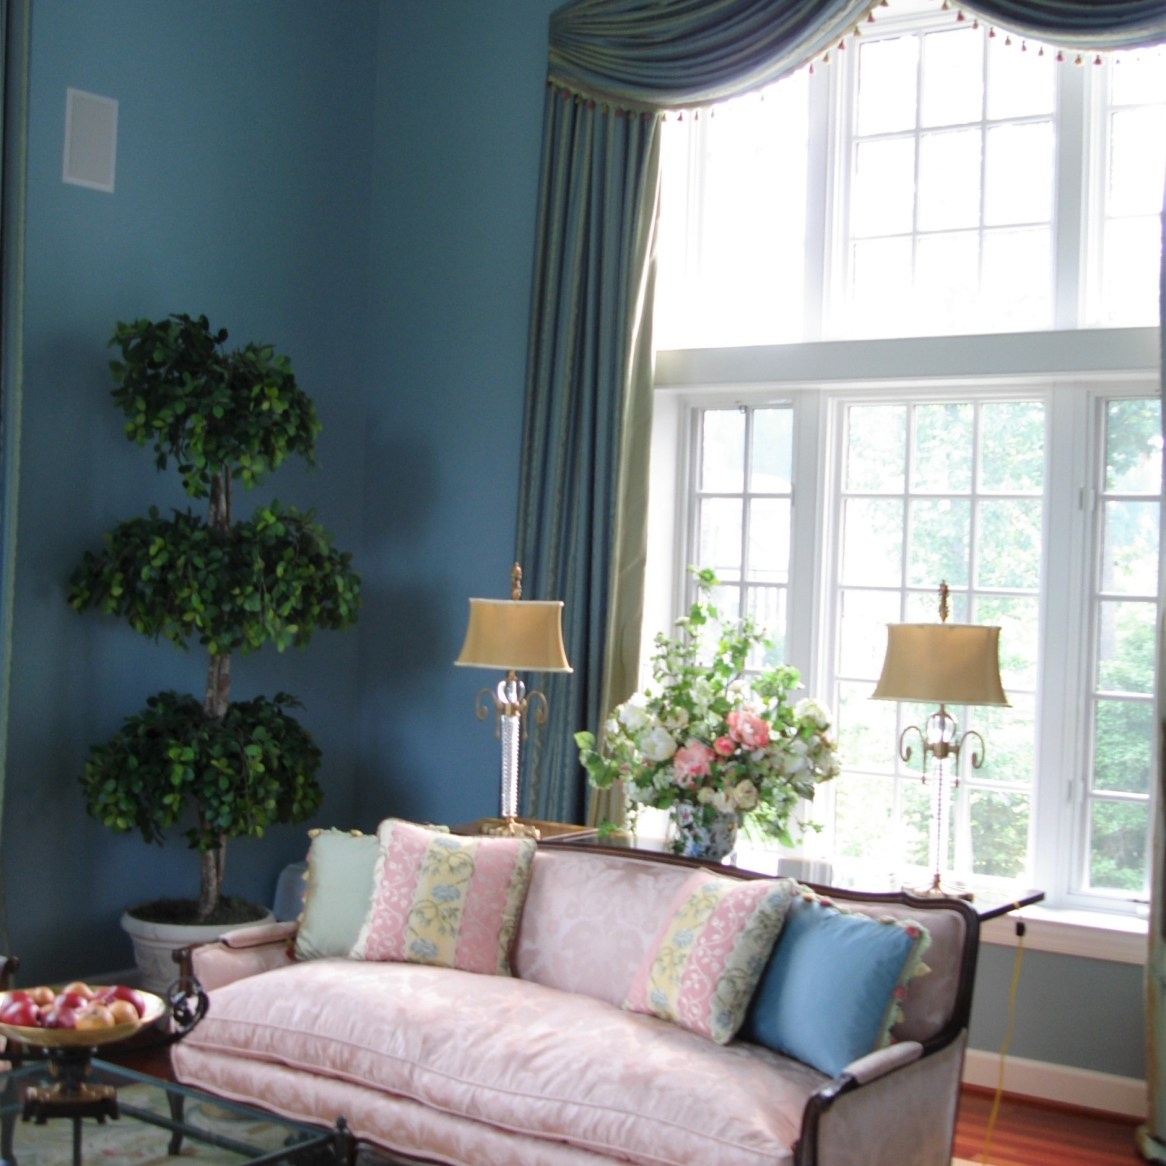 Potomac-Maryland-interior-designer-Shiva-Rostami-living-room-sunroom-McLean-VA